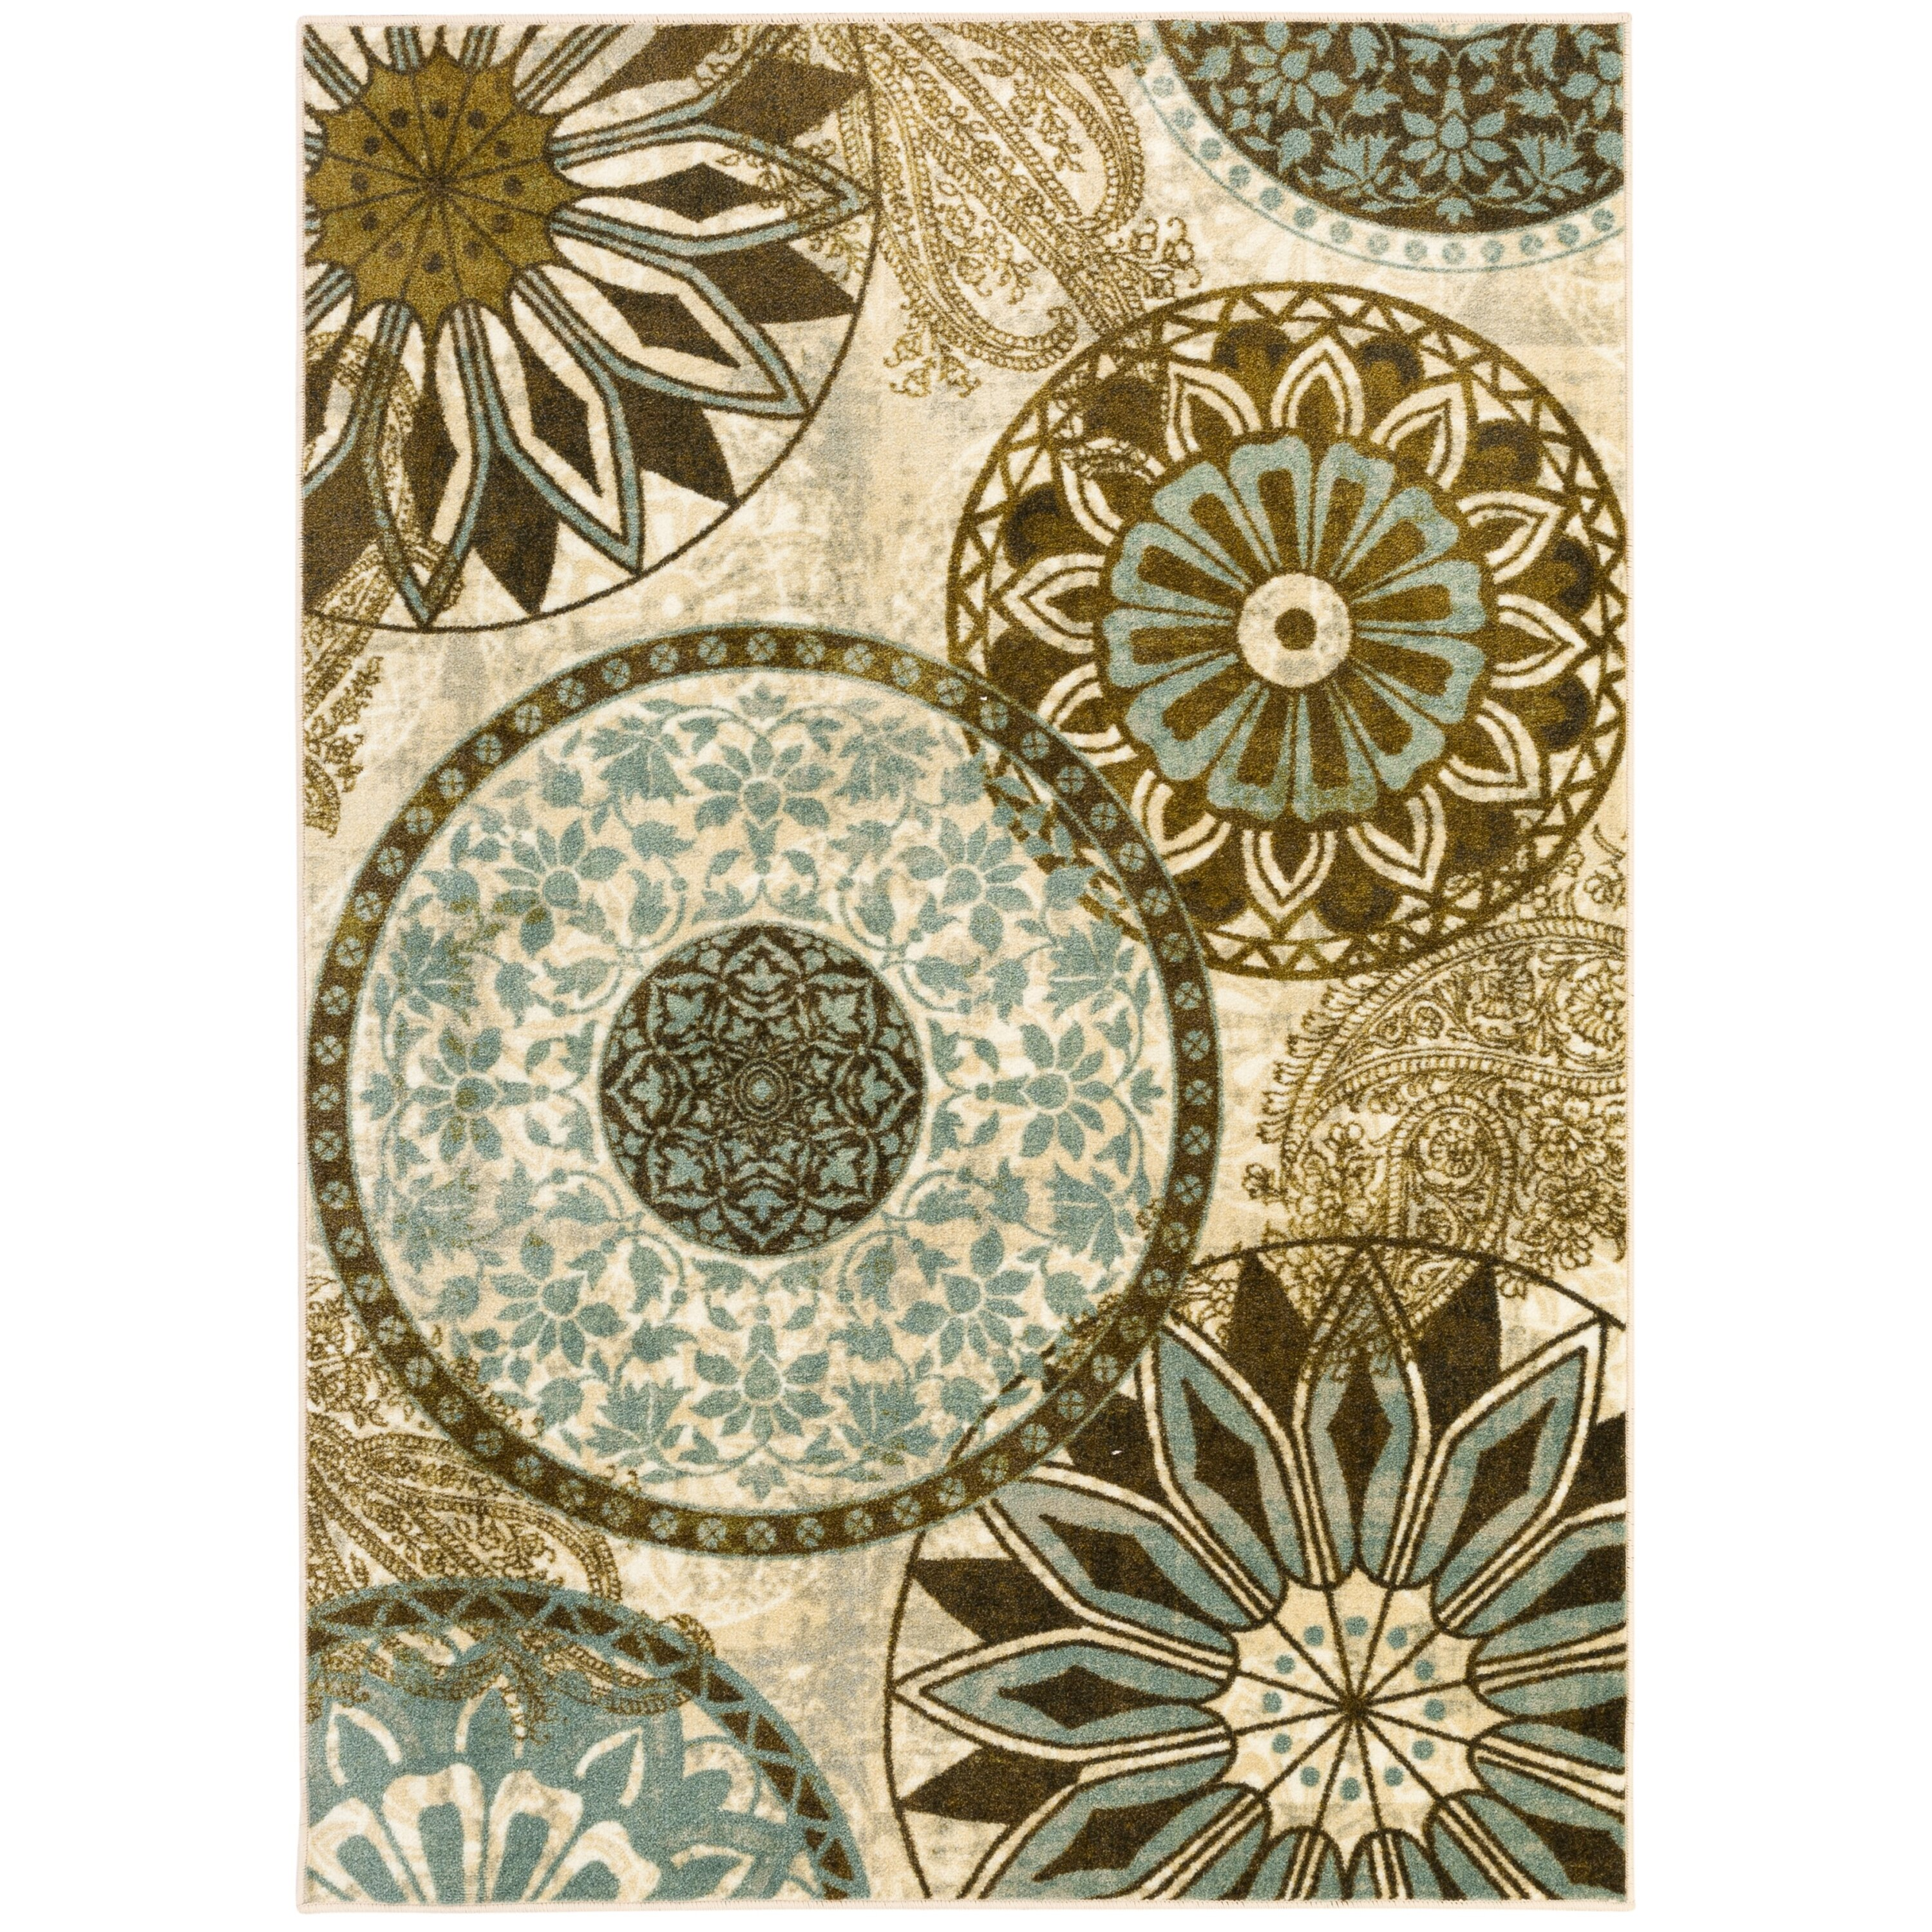 Area Rugs From India: Mohawk Home New Wave Inspired India Printed Area Rug